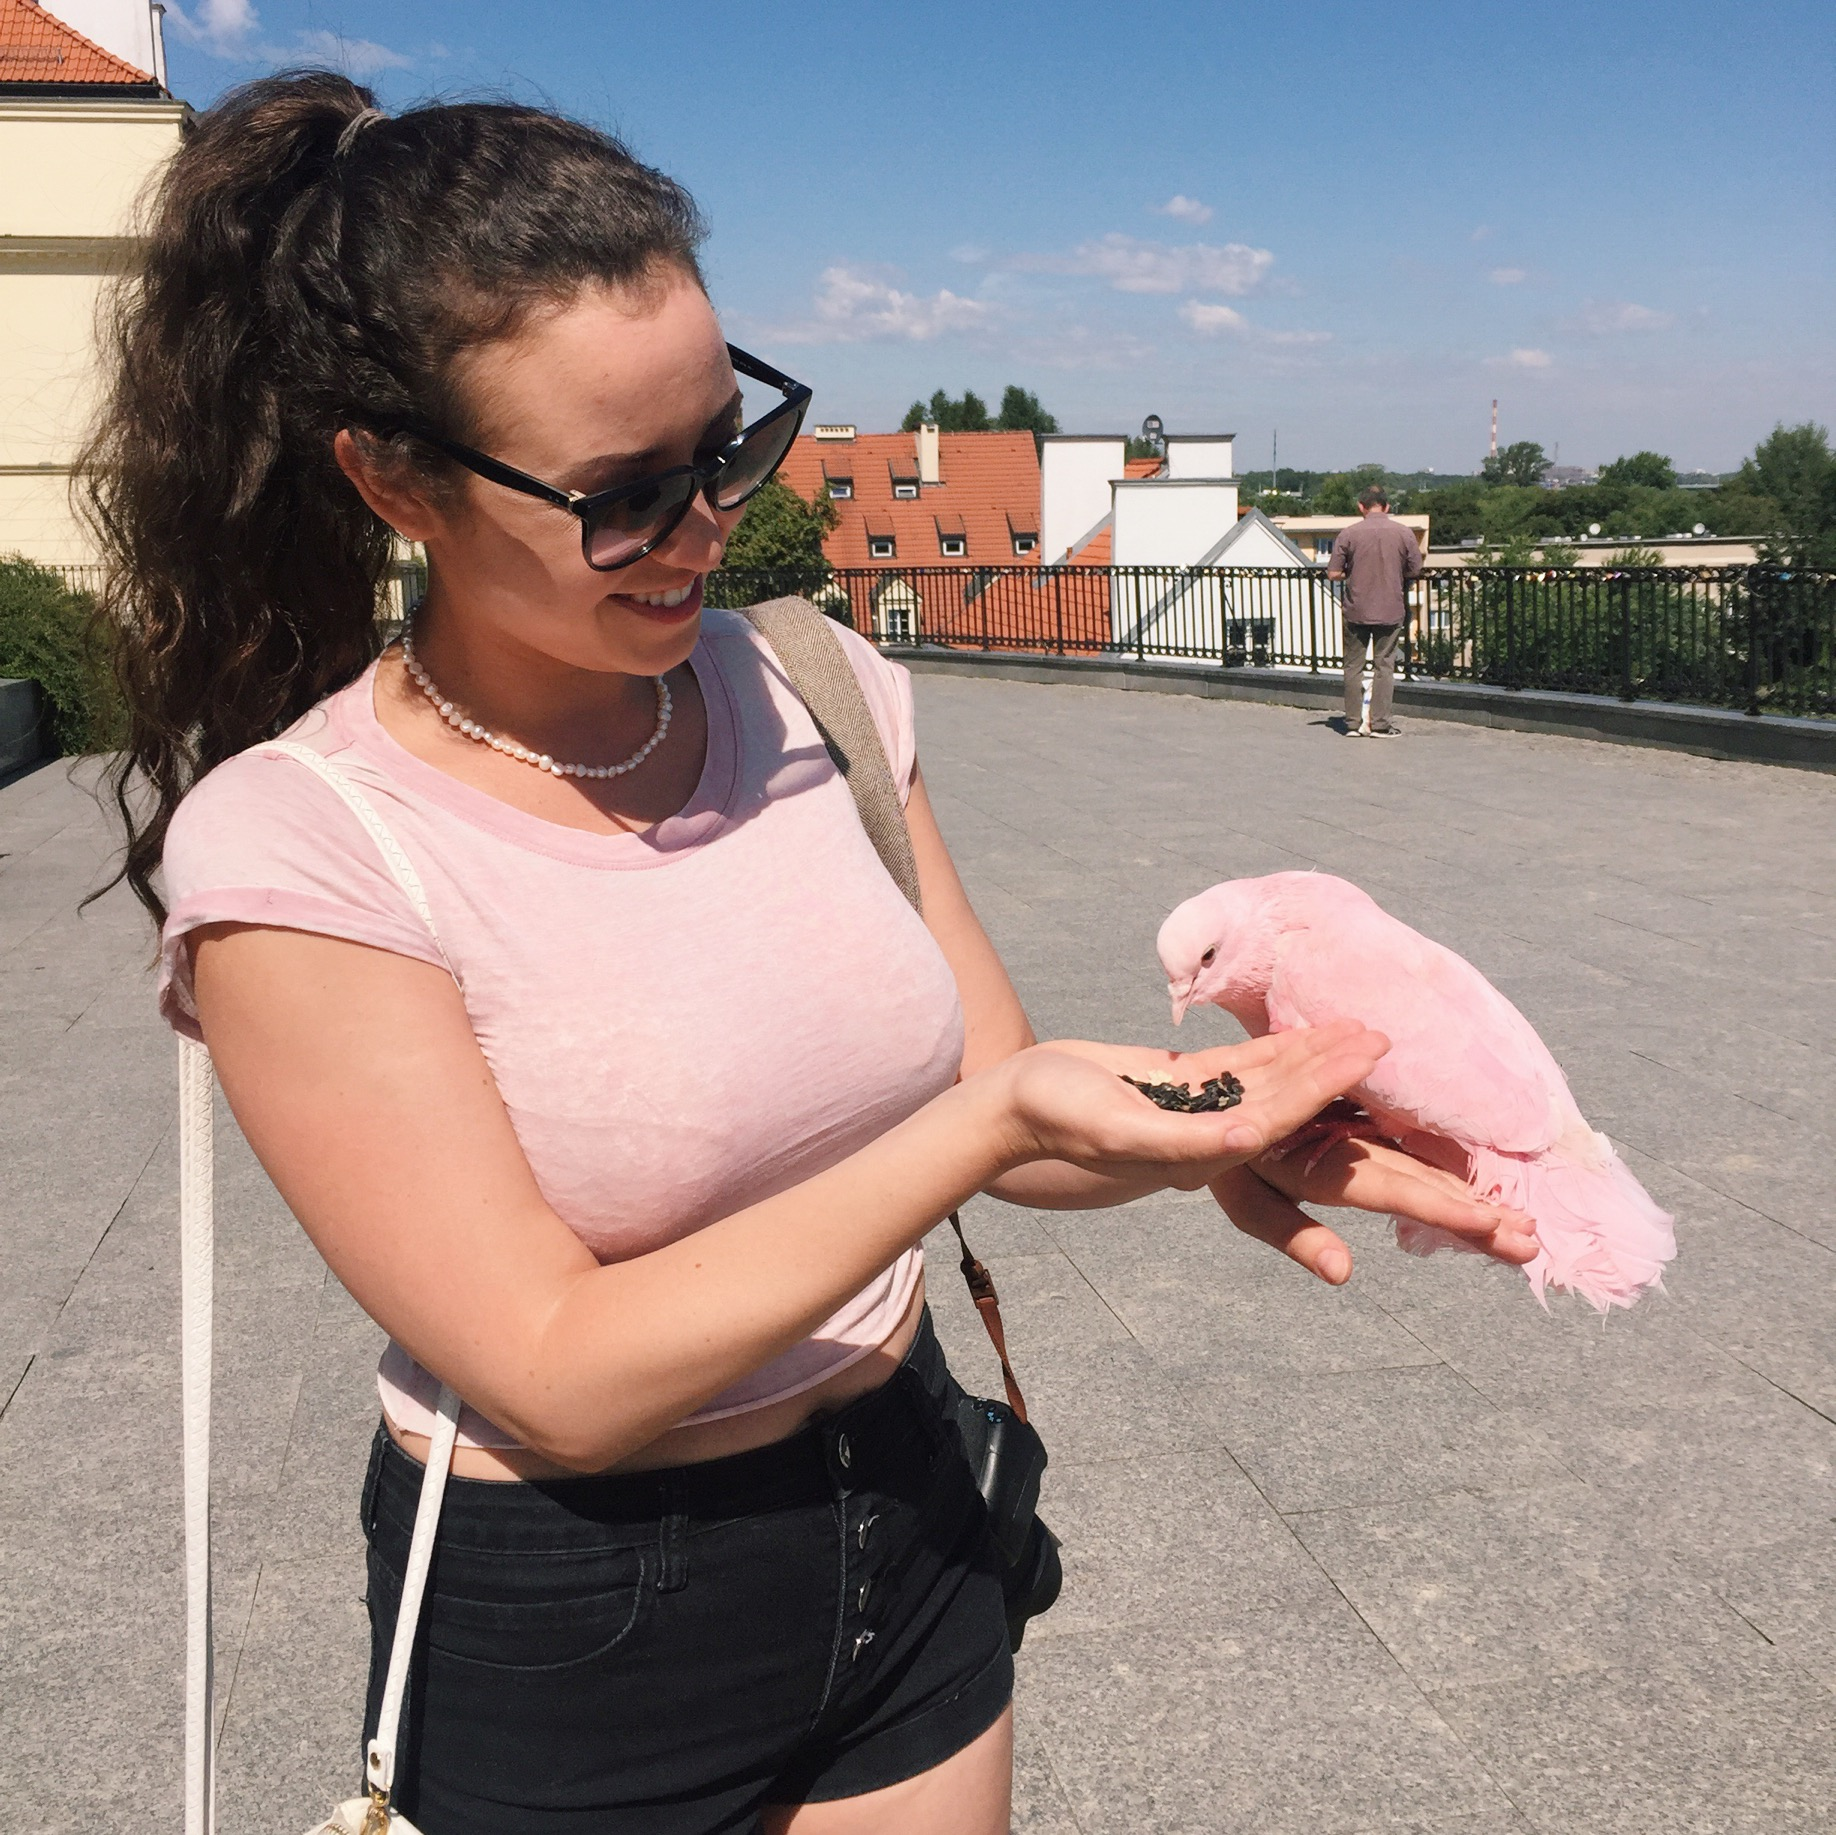 making friends with a matching pigeon. I love making new animal friends :)